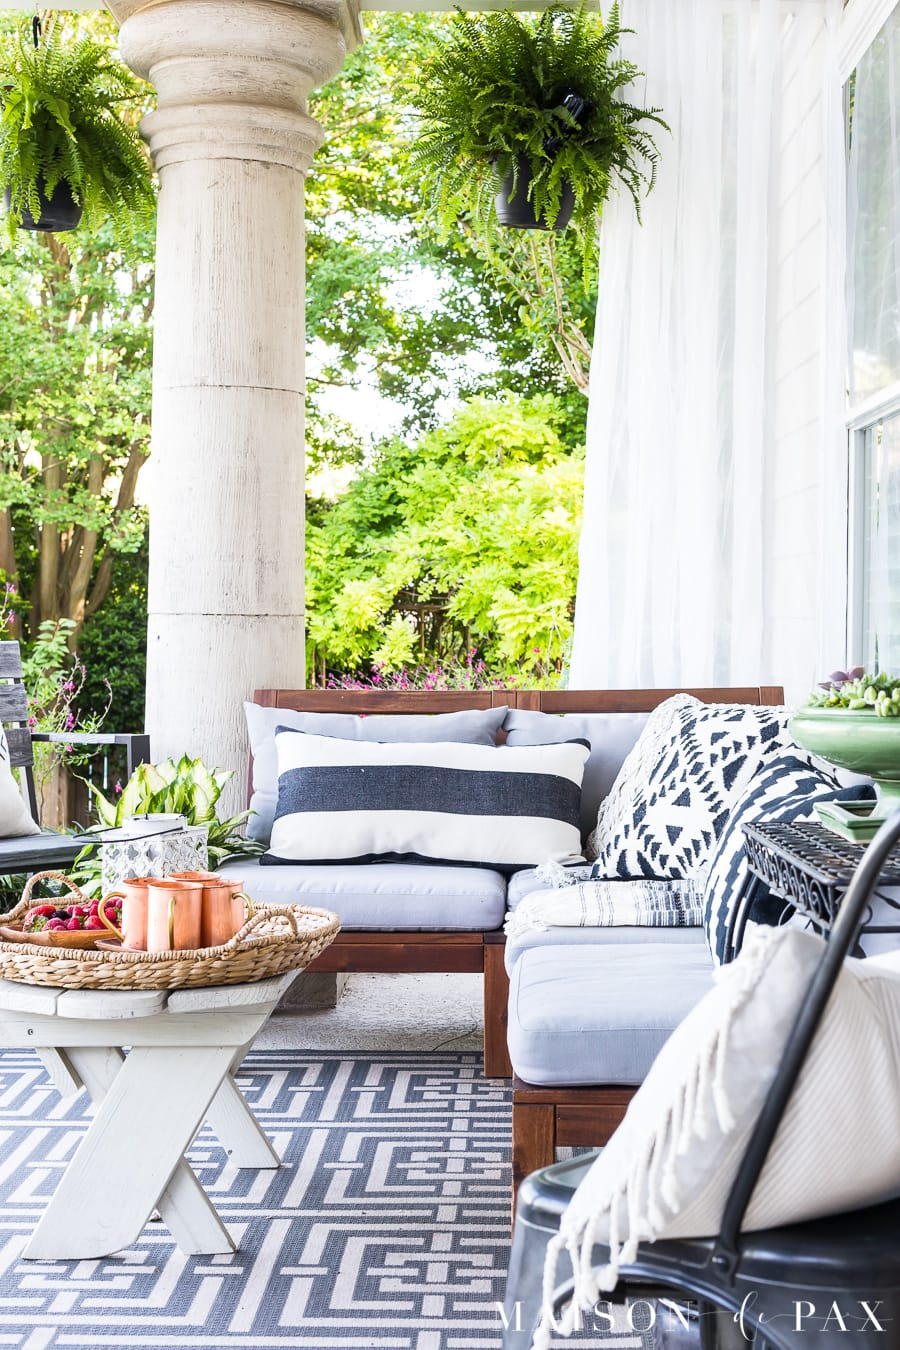 Summer porch with ferns and plants- Maison de Pax